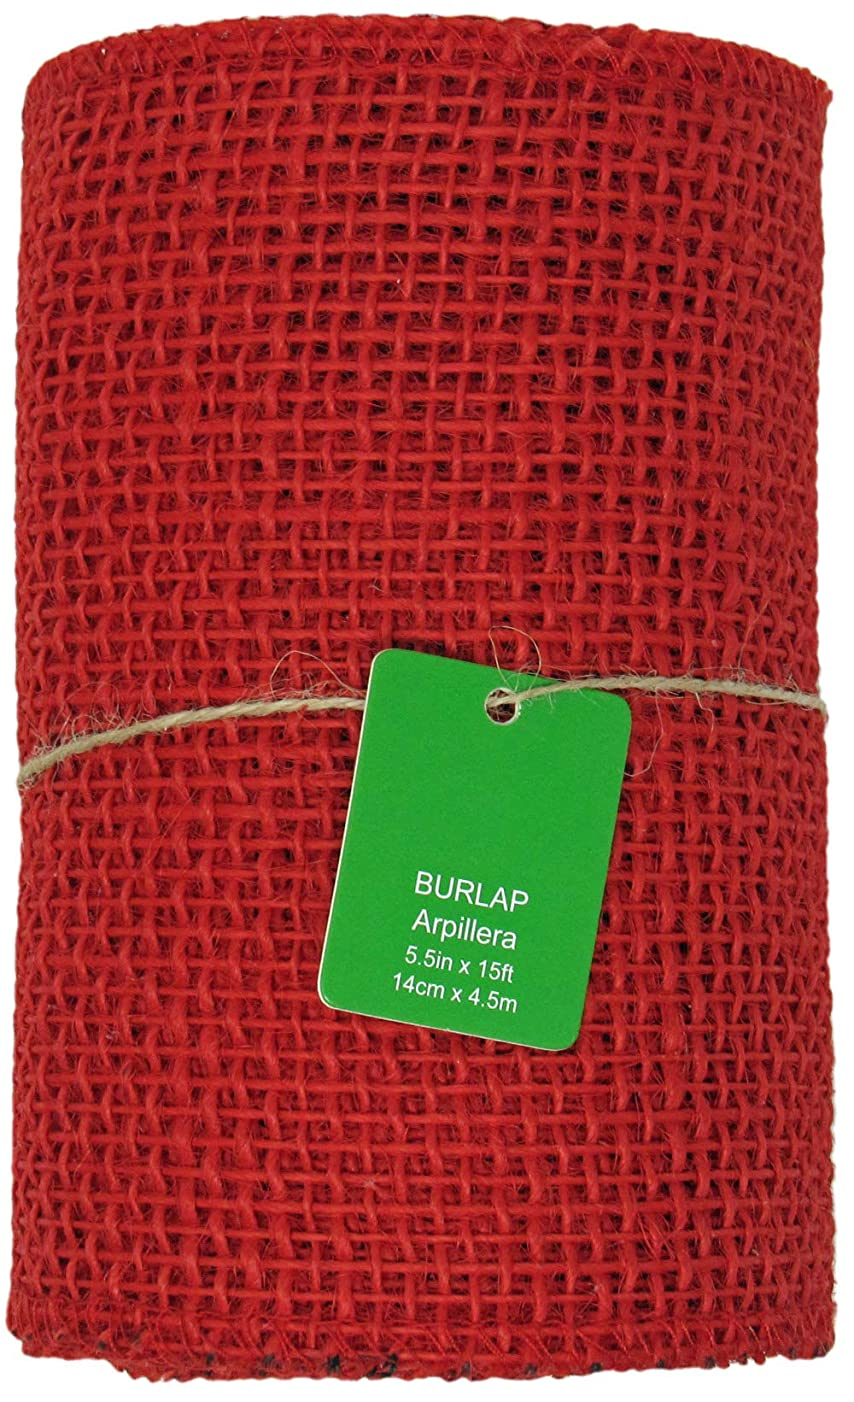 5.5 Inches Wide 15 Feet Long Woven Fabric Burlap Craft Ribbon Roll - Red